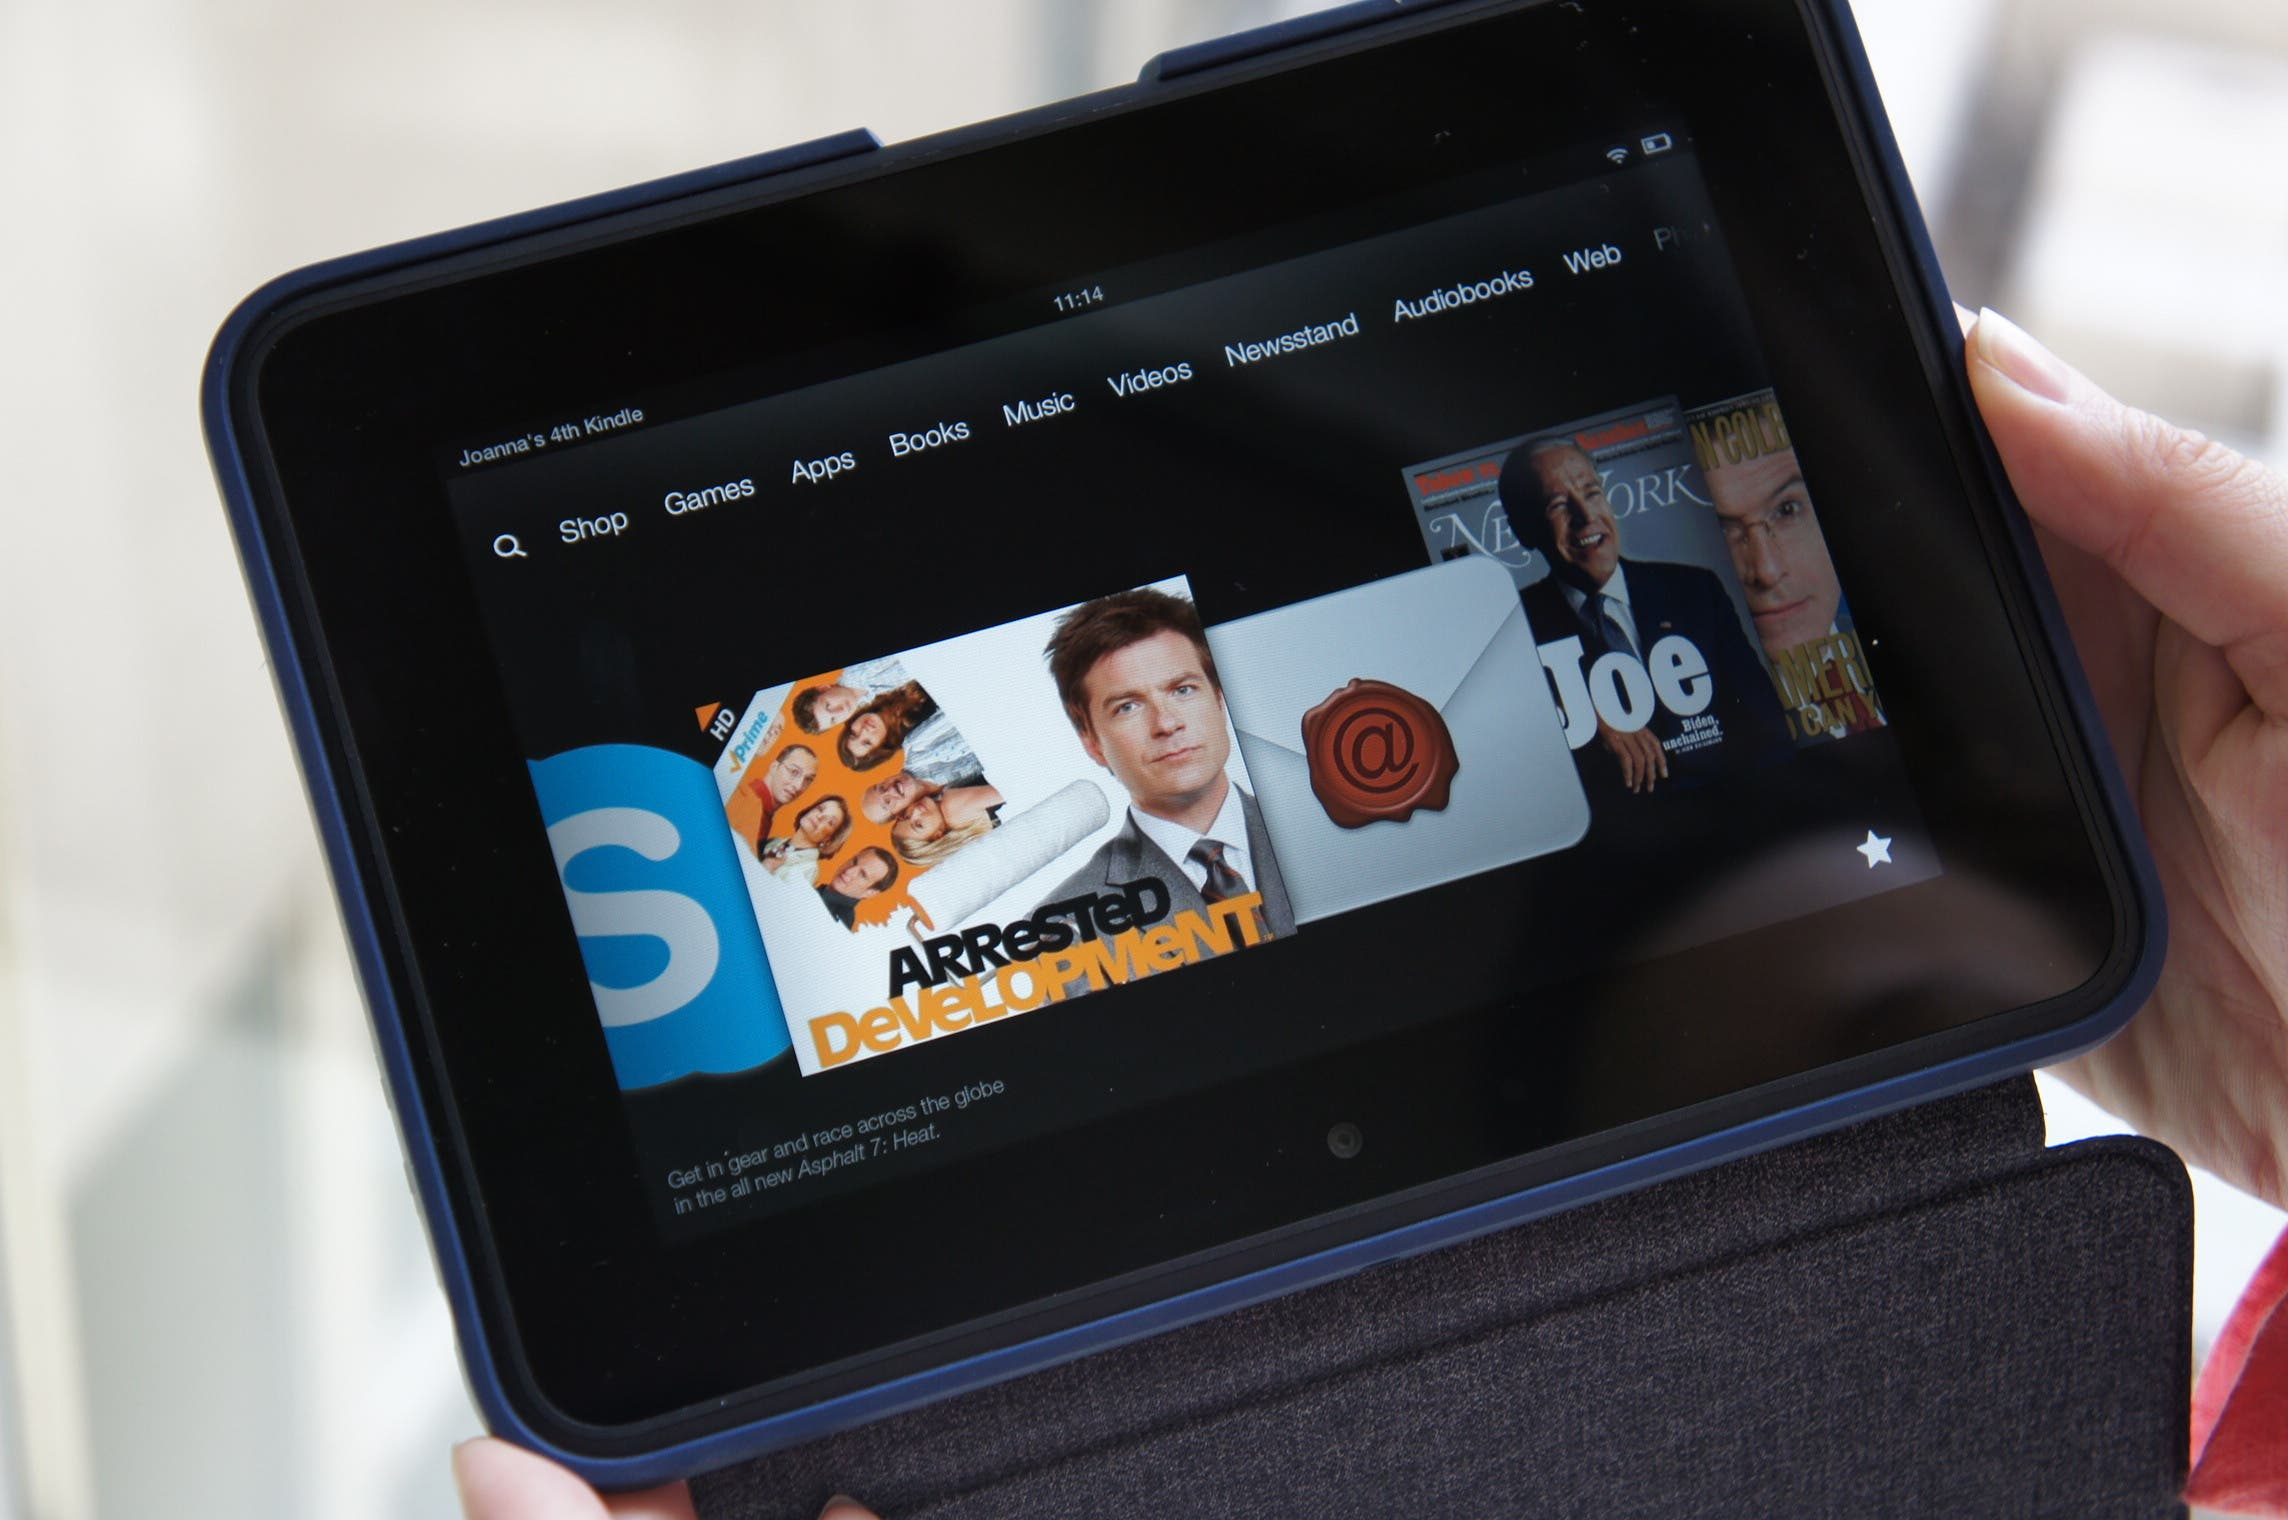 Amazon Kindle Fire: Neues 7-inch Tablet auf dem Weg?